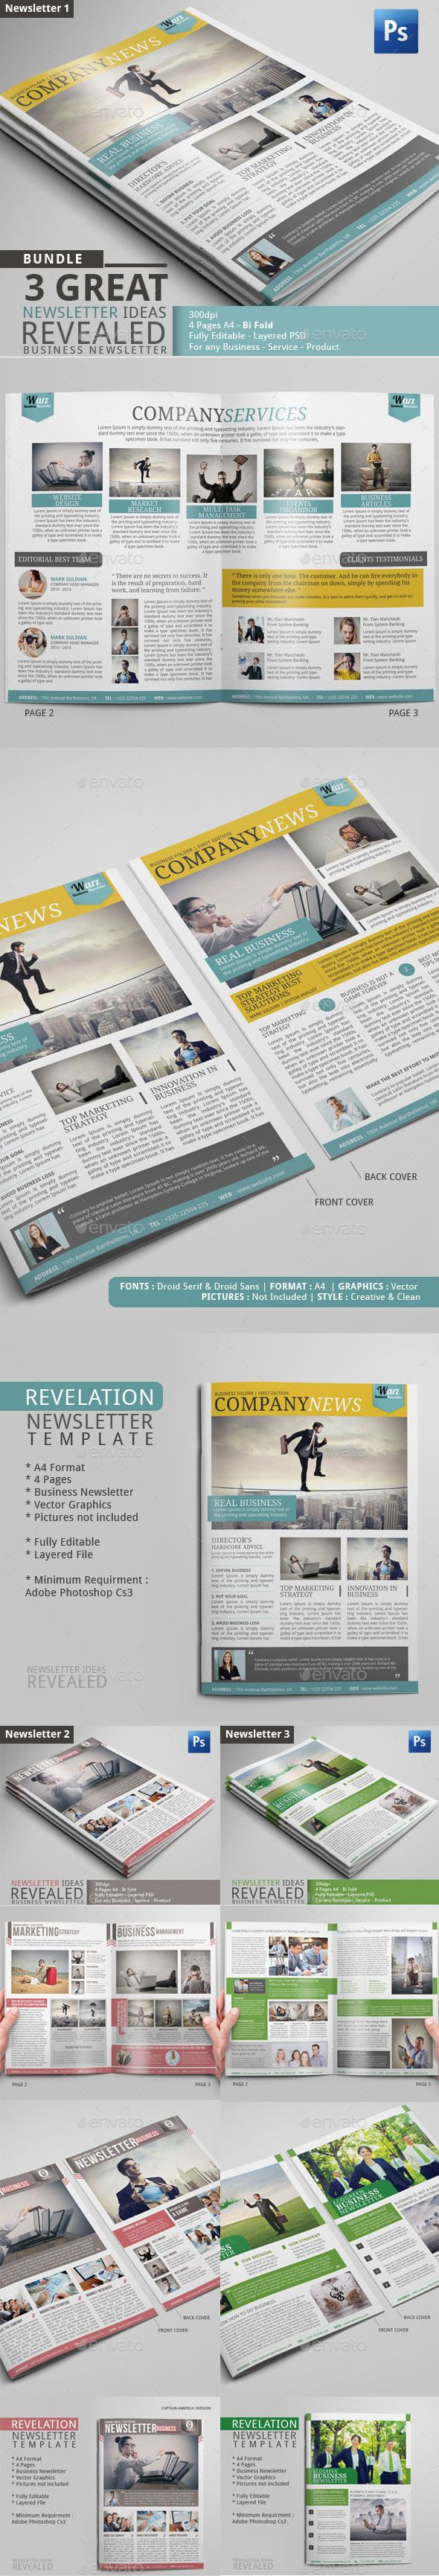 Best Newsletter Design Images On   Newsletter